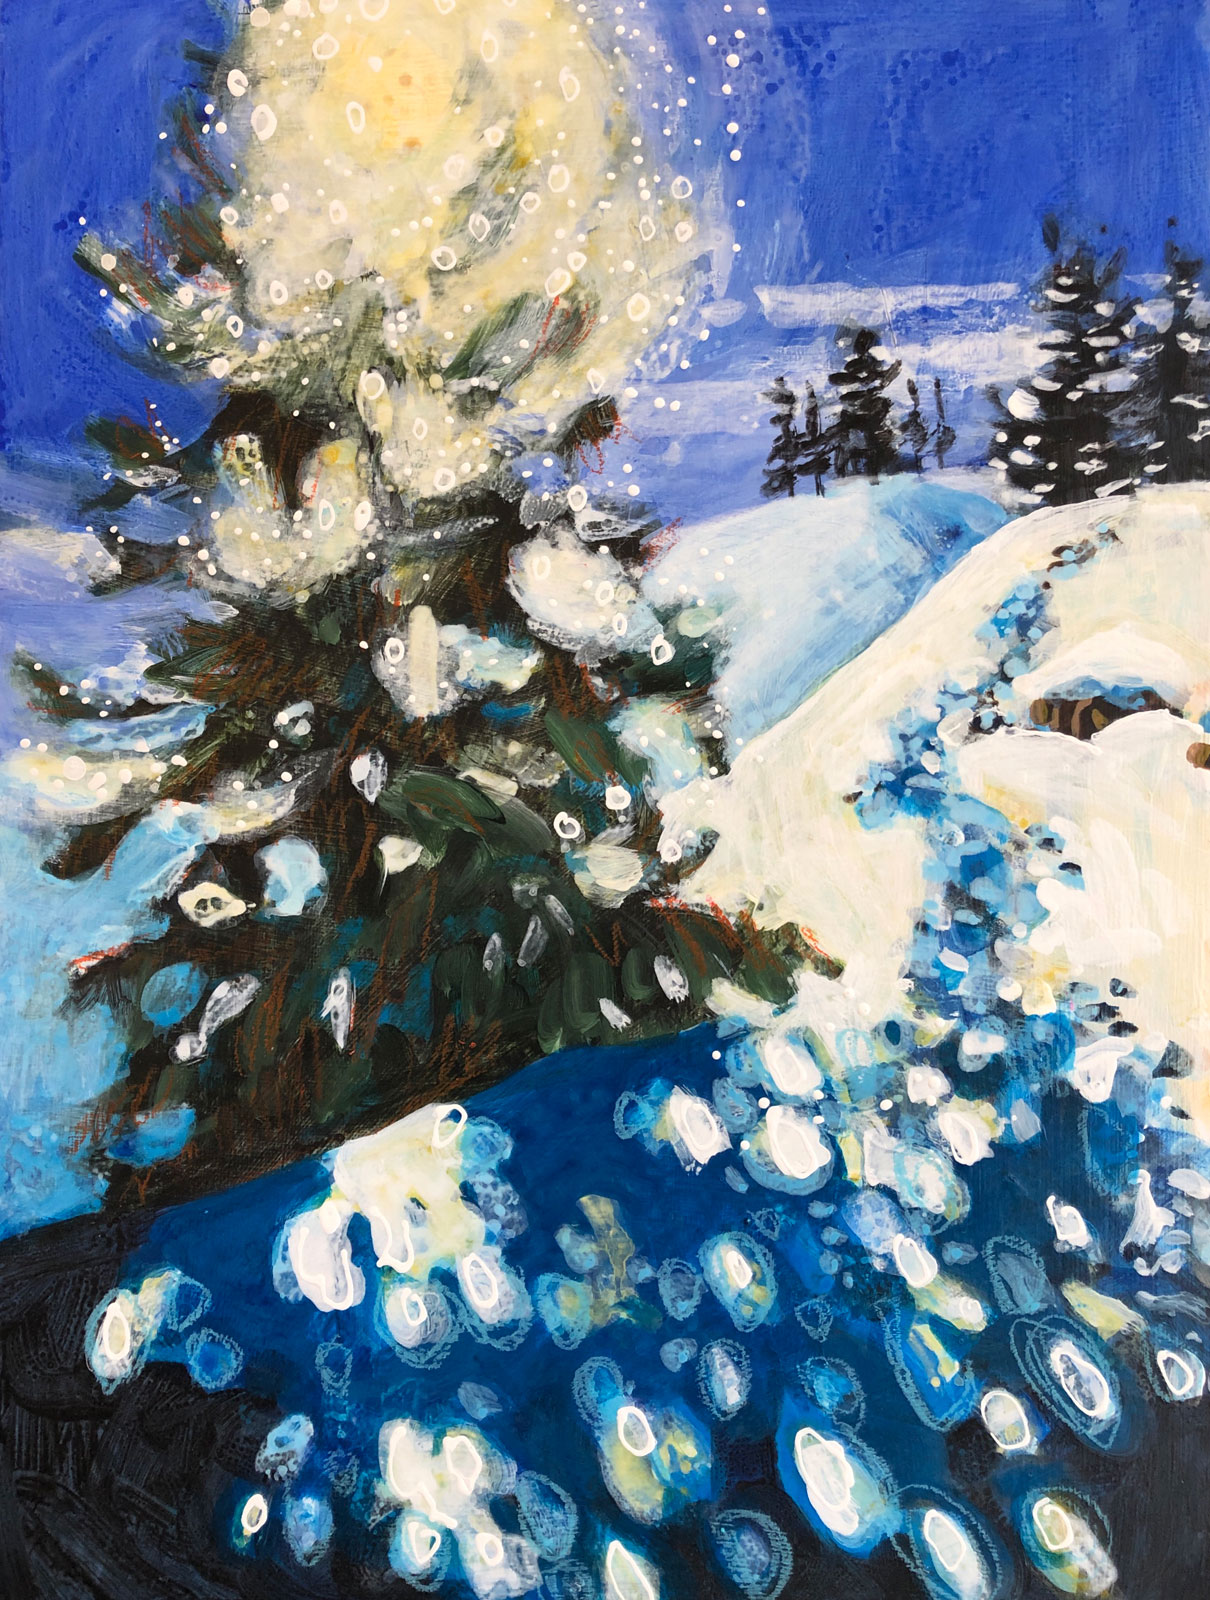 Backcountry-Vibes-No5- winter landscape painting by Colorado artist Lance Whitner.